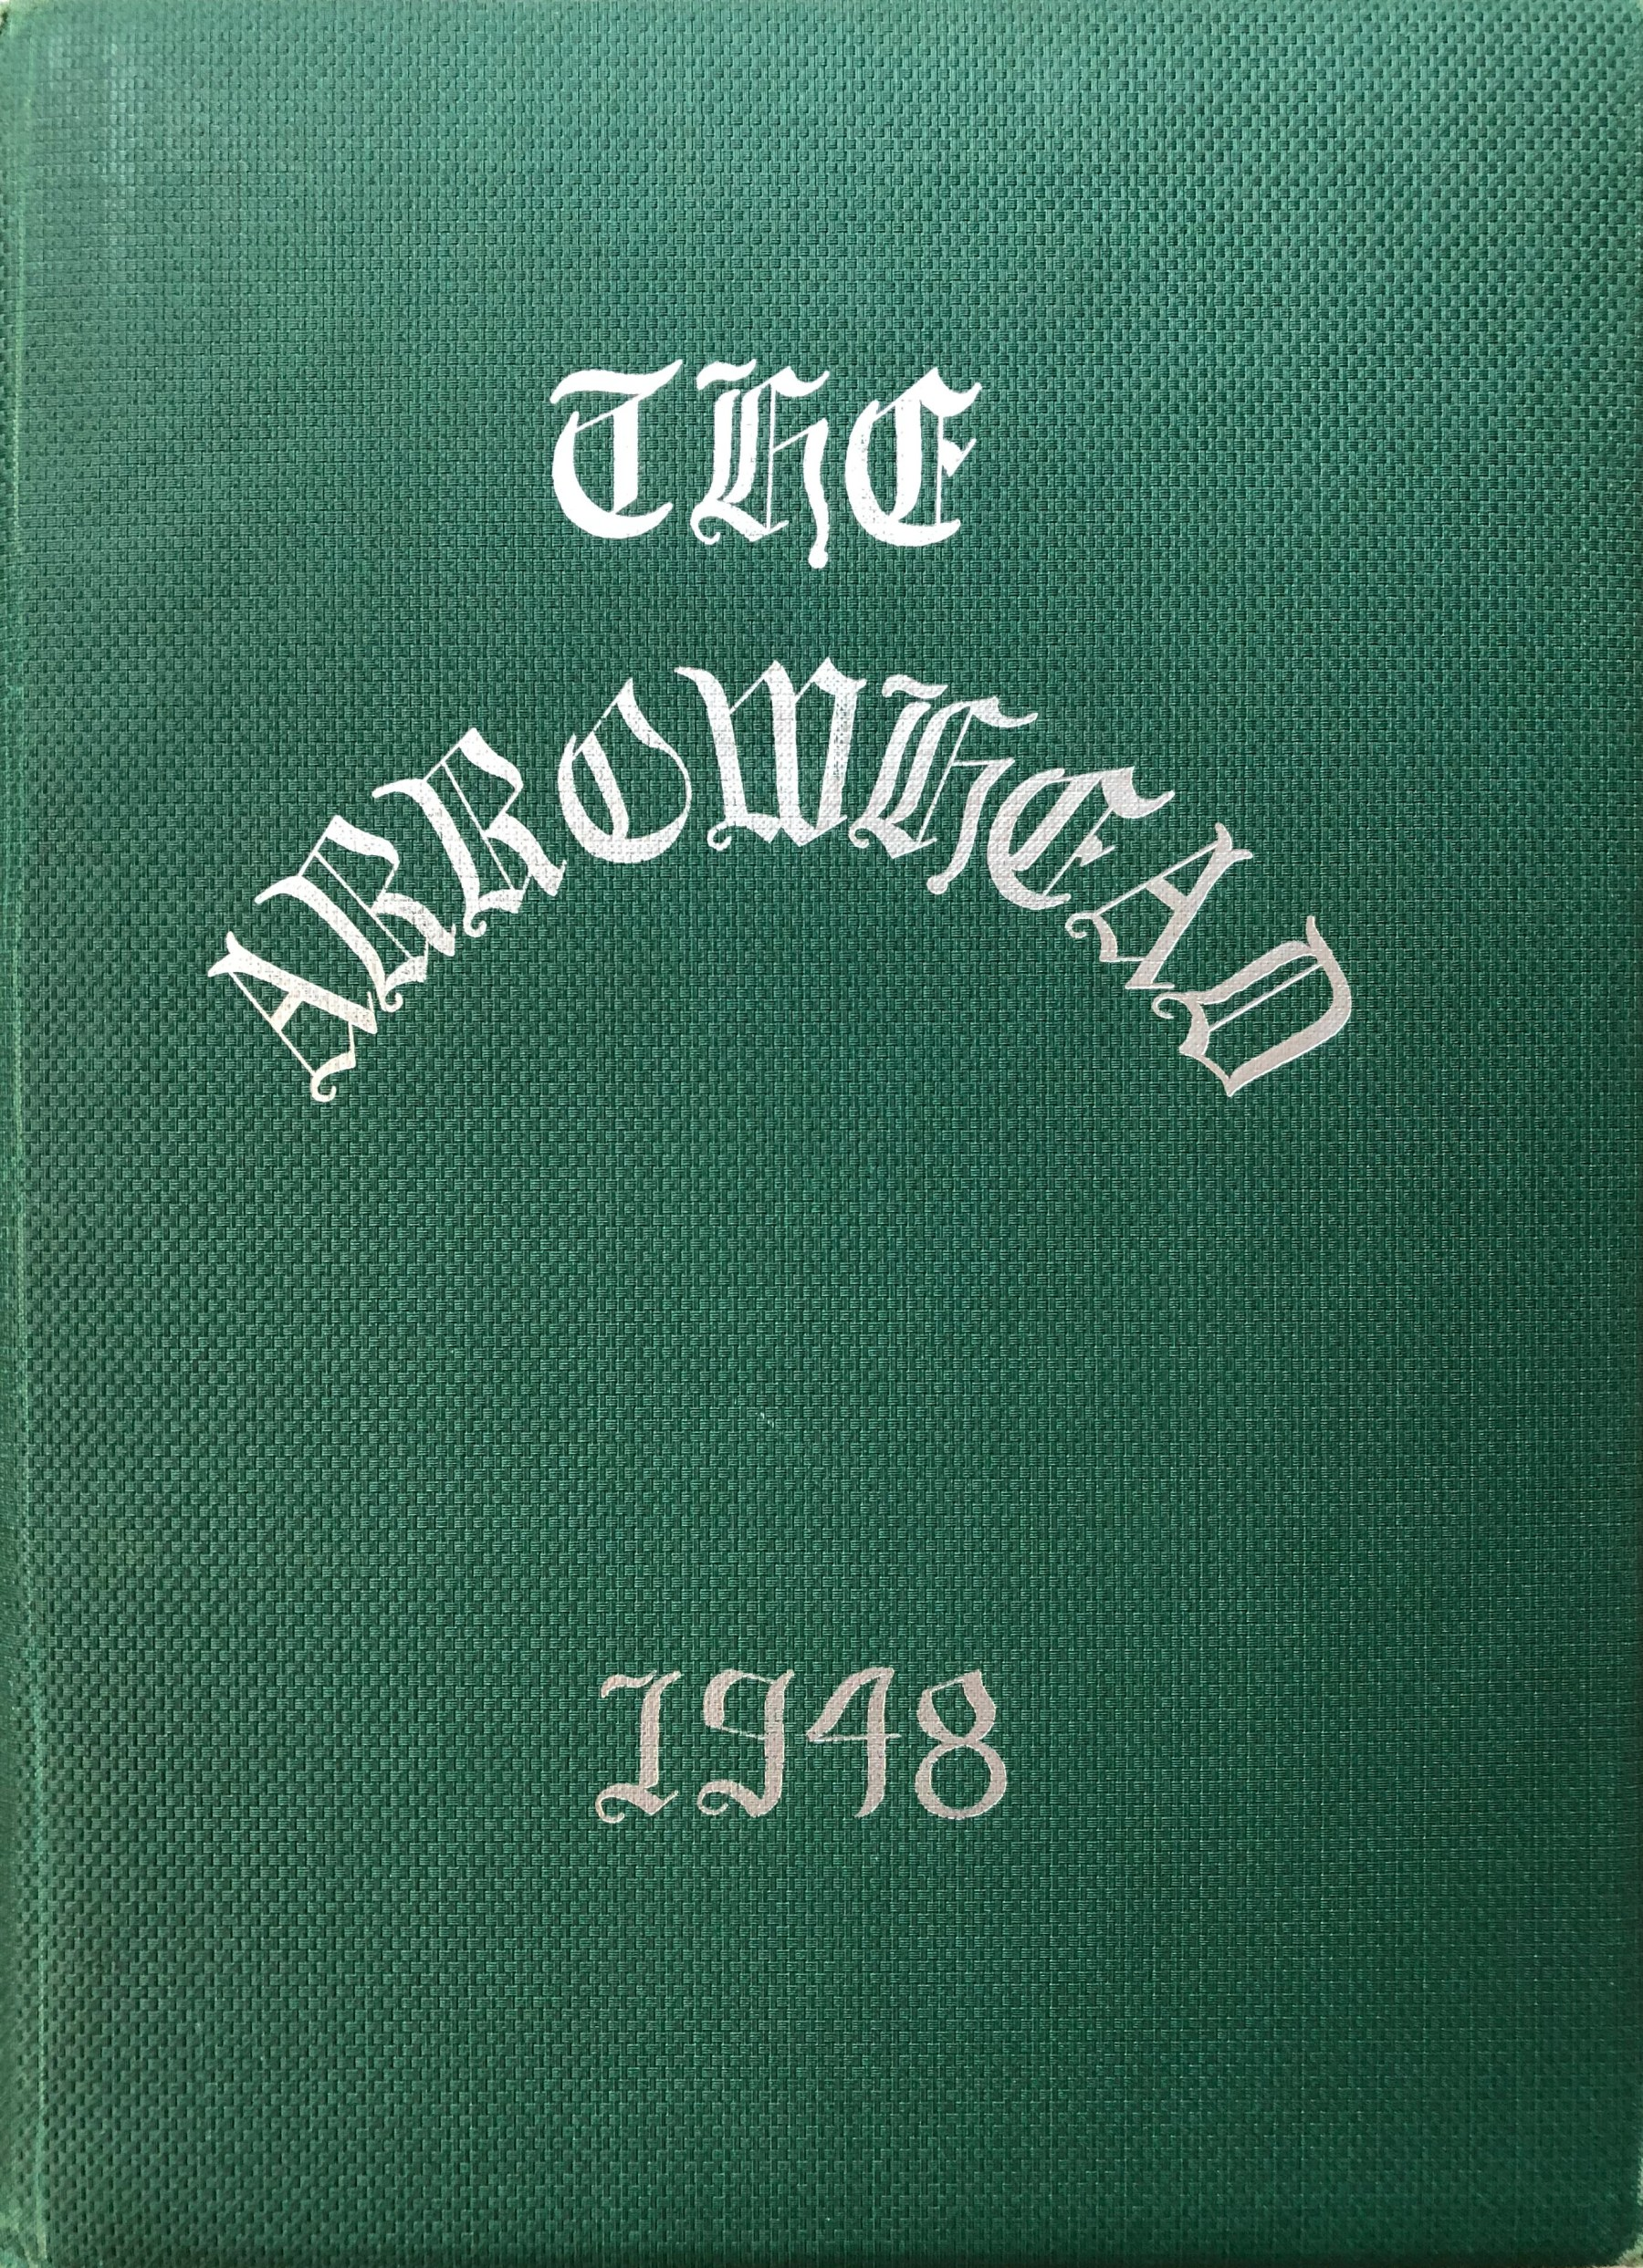 1948 Burlington High School yearbook cover